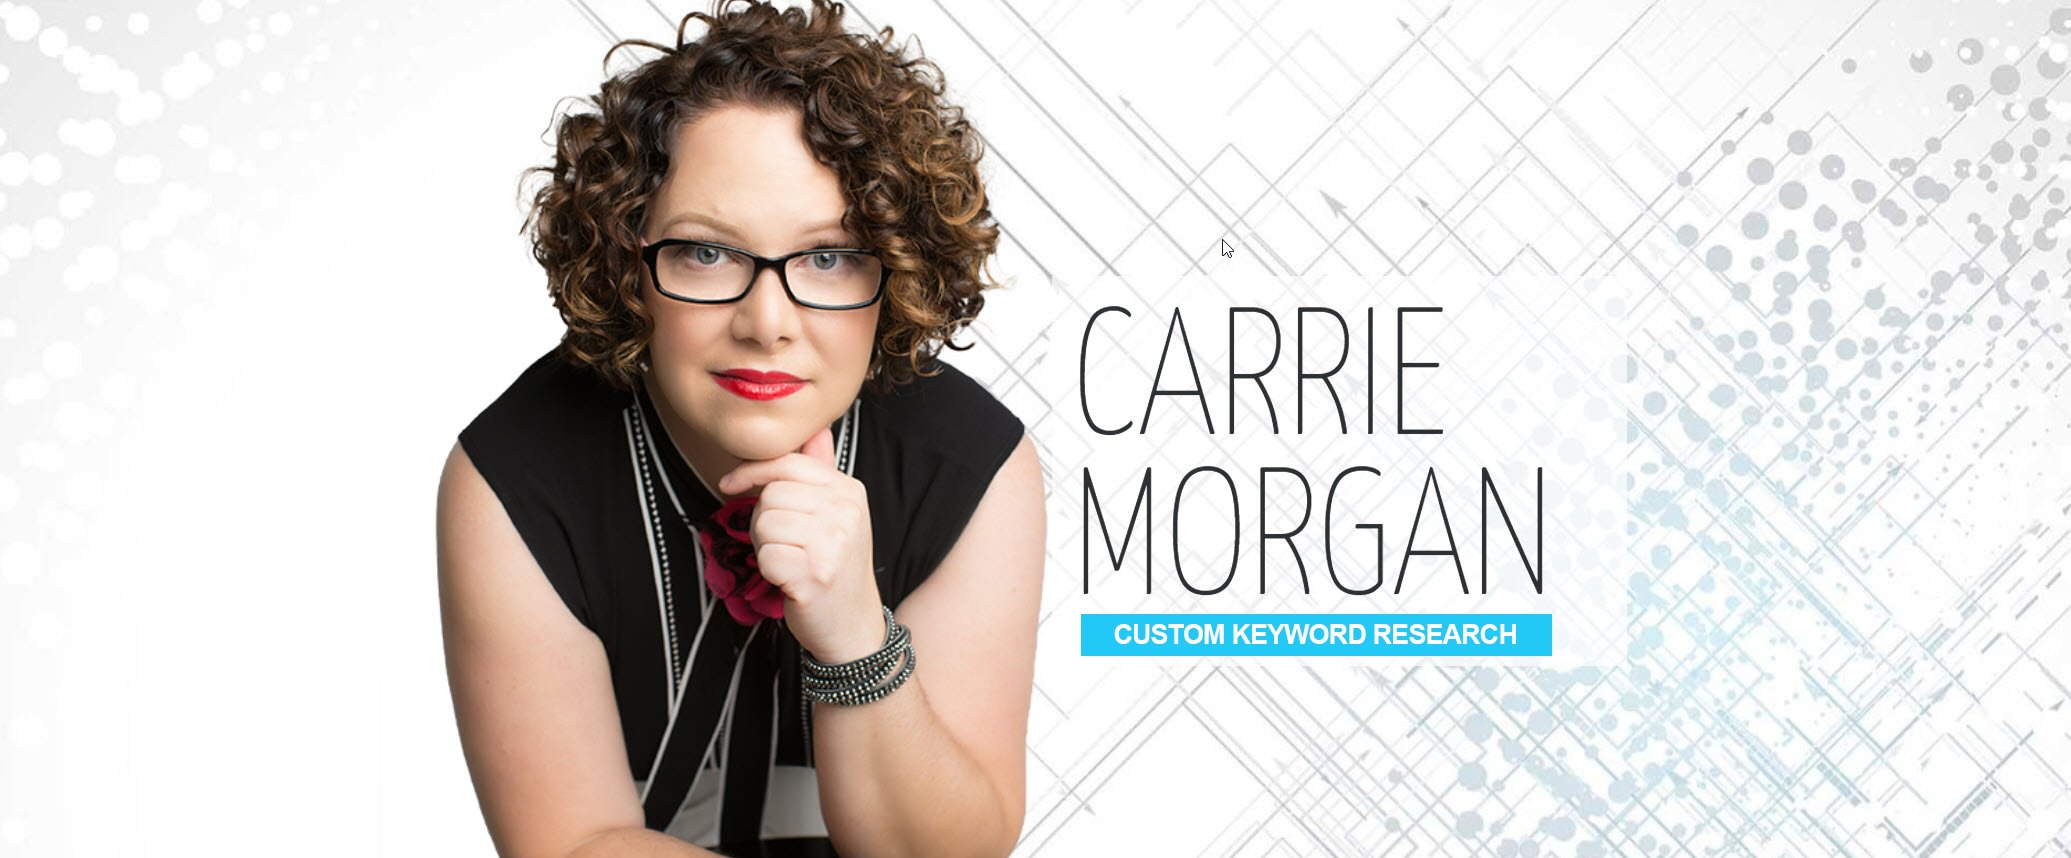 Custom Keyword Research Specialist, Carrie Morgan, headshot image, Phoenix Arizona